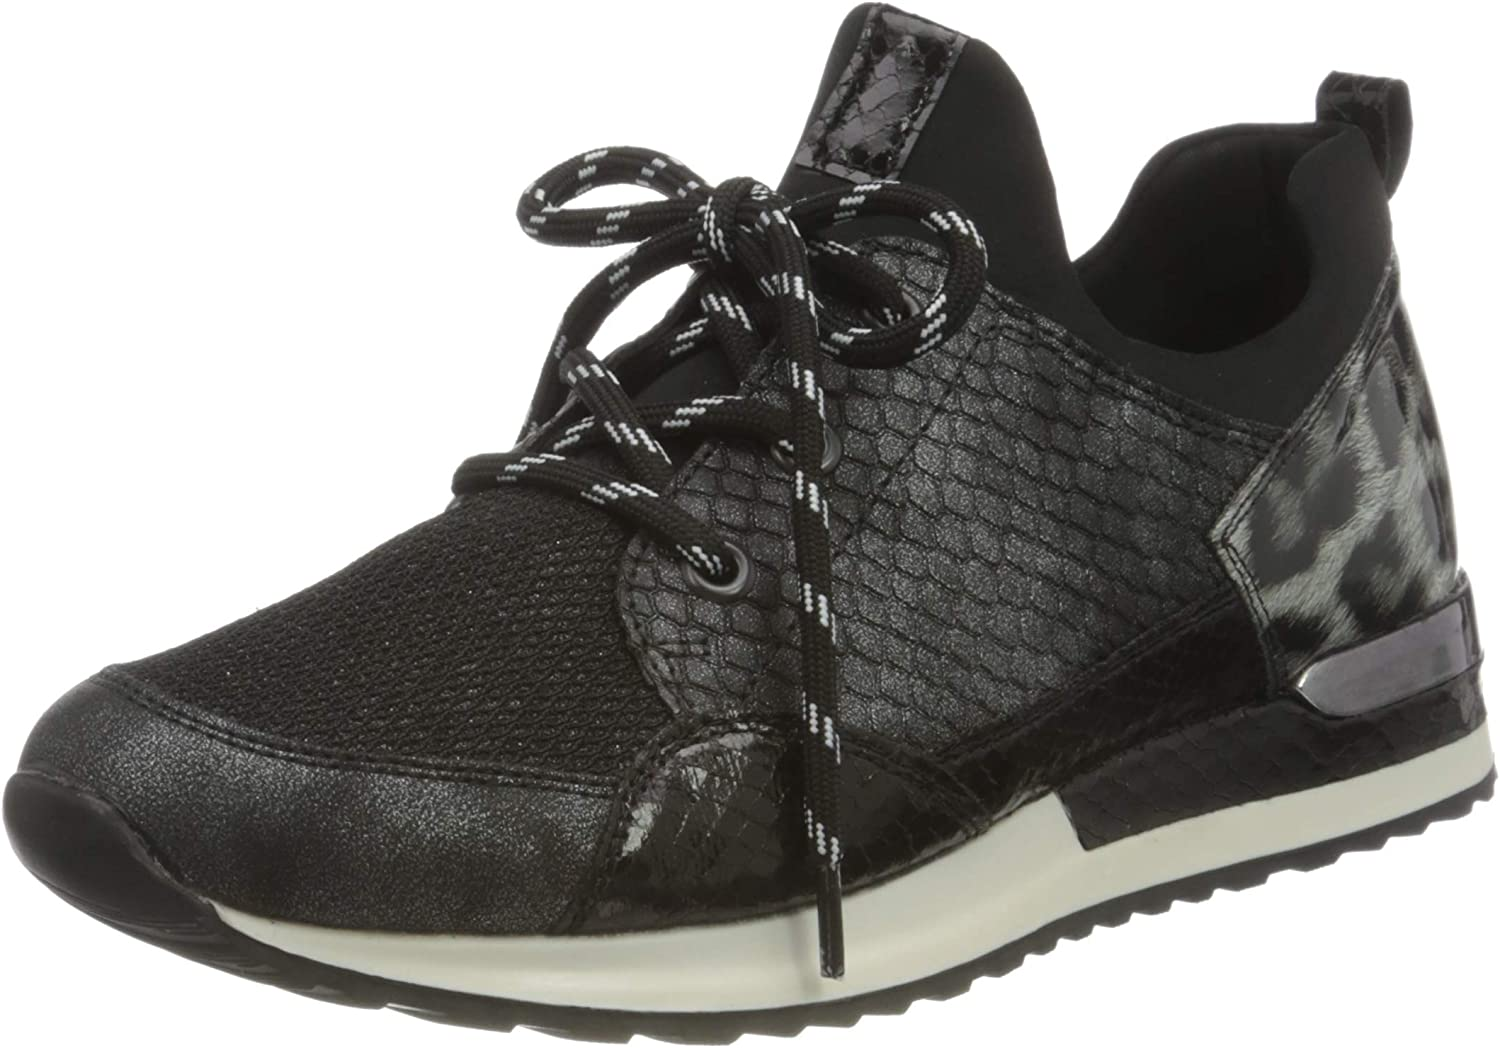 Remonte Women's Sneakers Inexpensive Max 63% OFF Low-Top